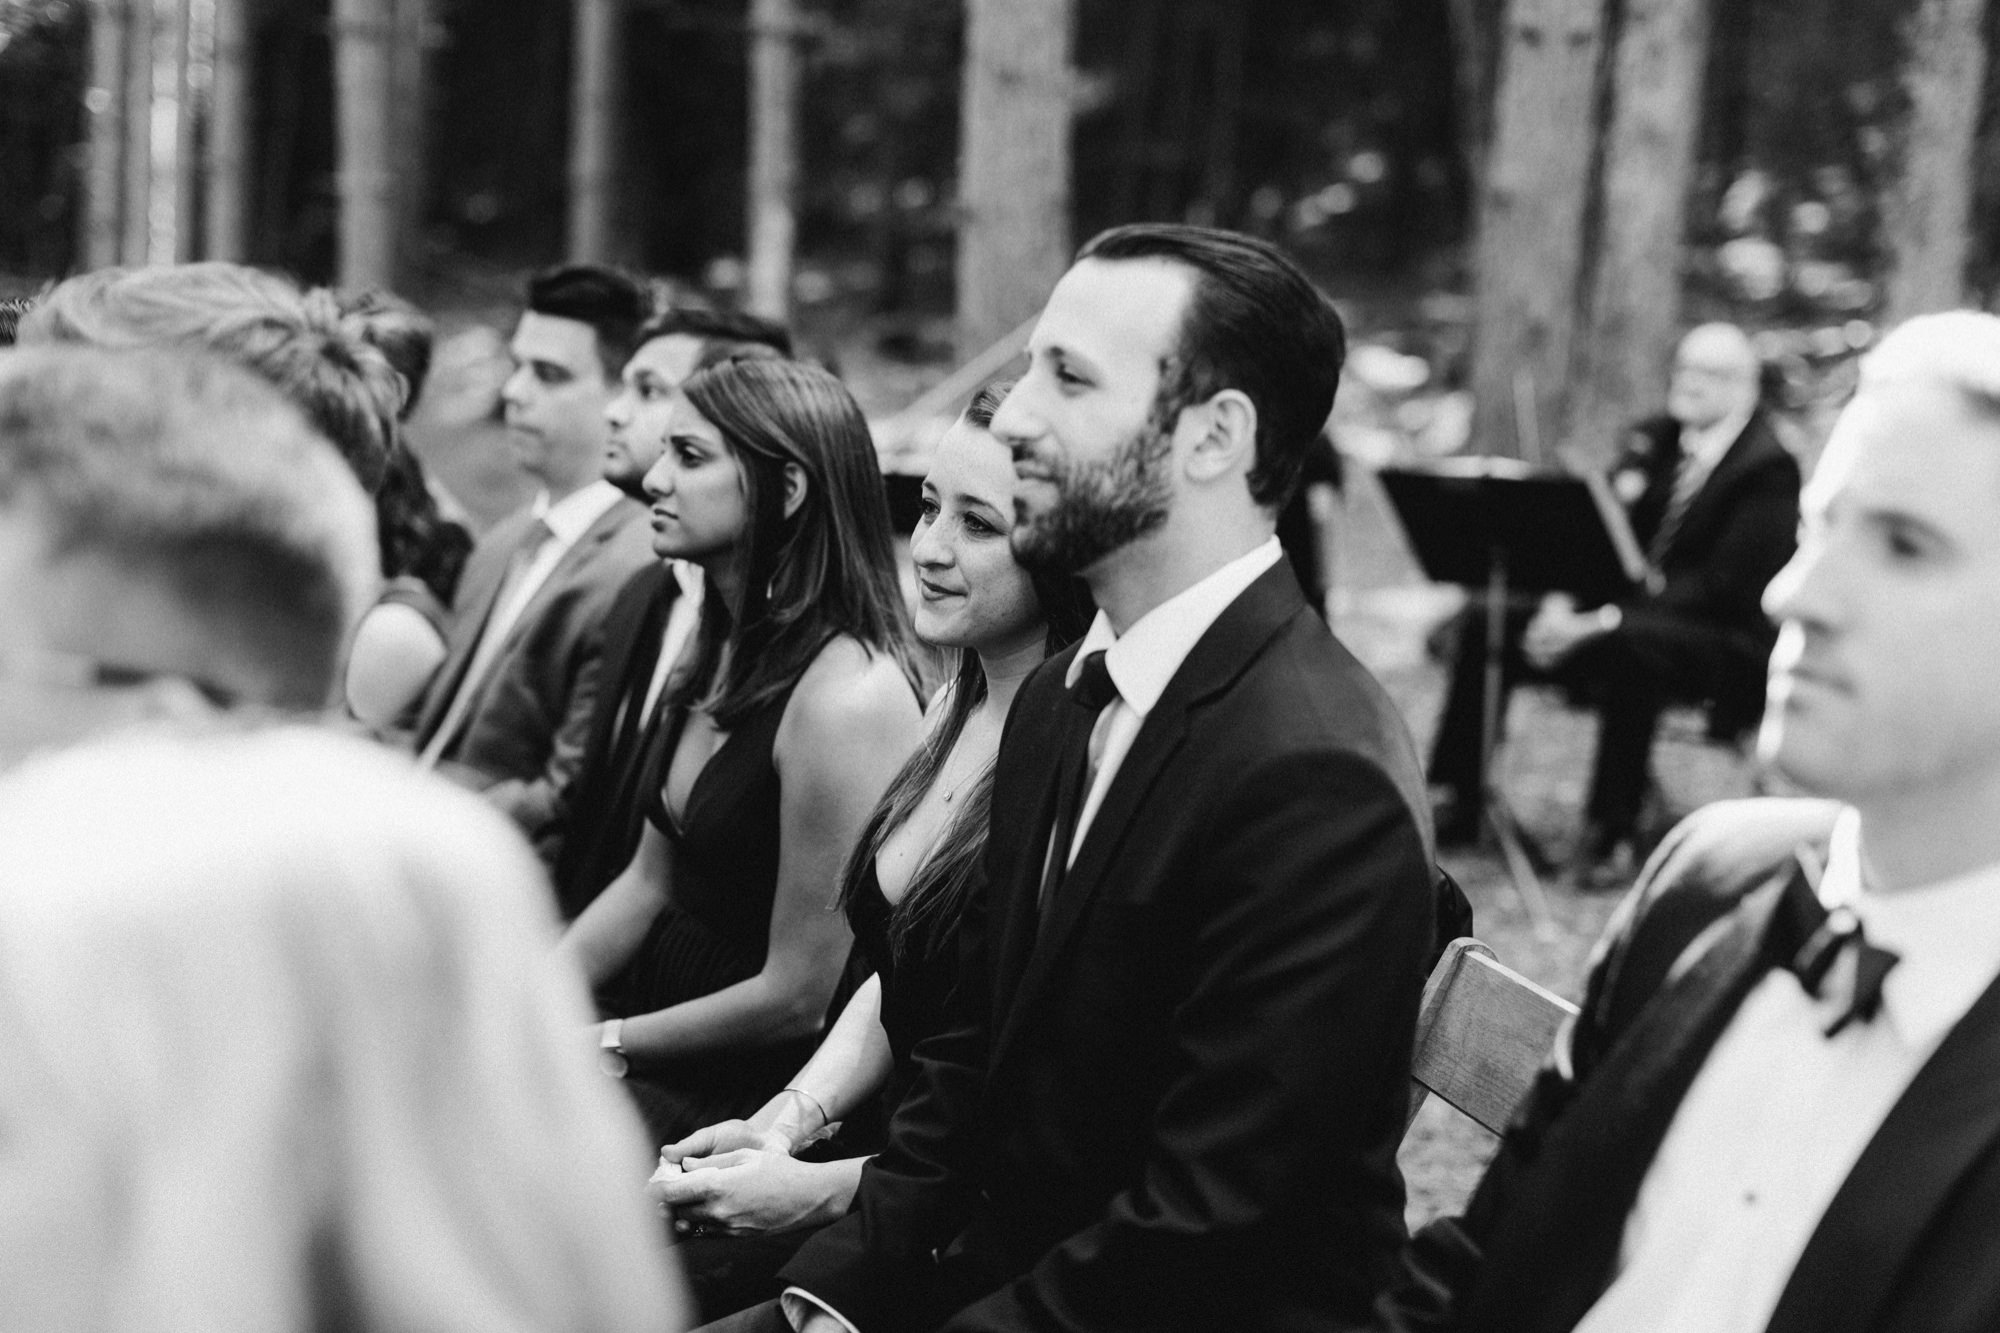 Guests at wedding ceremony at the Pine Grove location at Roxbury Barn Estate in the Catskills New York